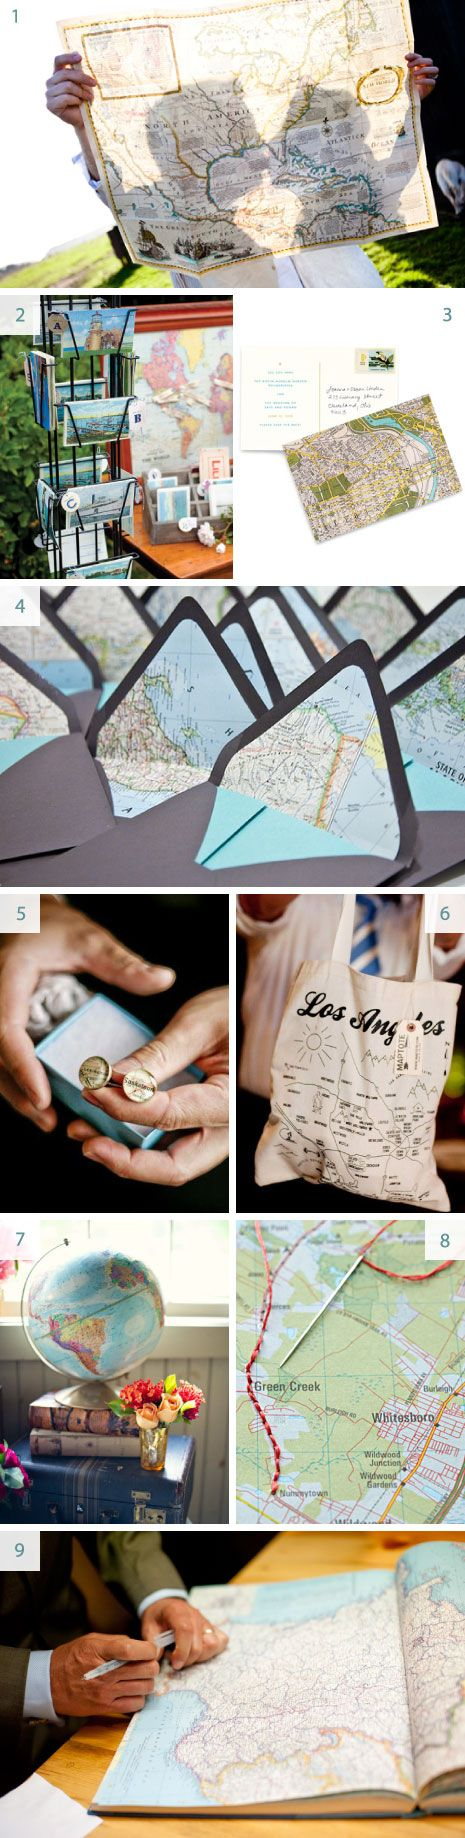 Mapping it out! Travel inspired seating plan and wedding details. Love this idea for an anniversary party for us since we travel a lot.